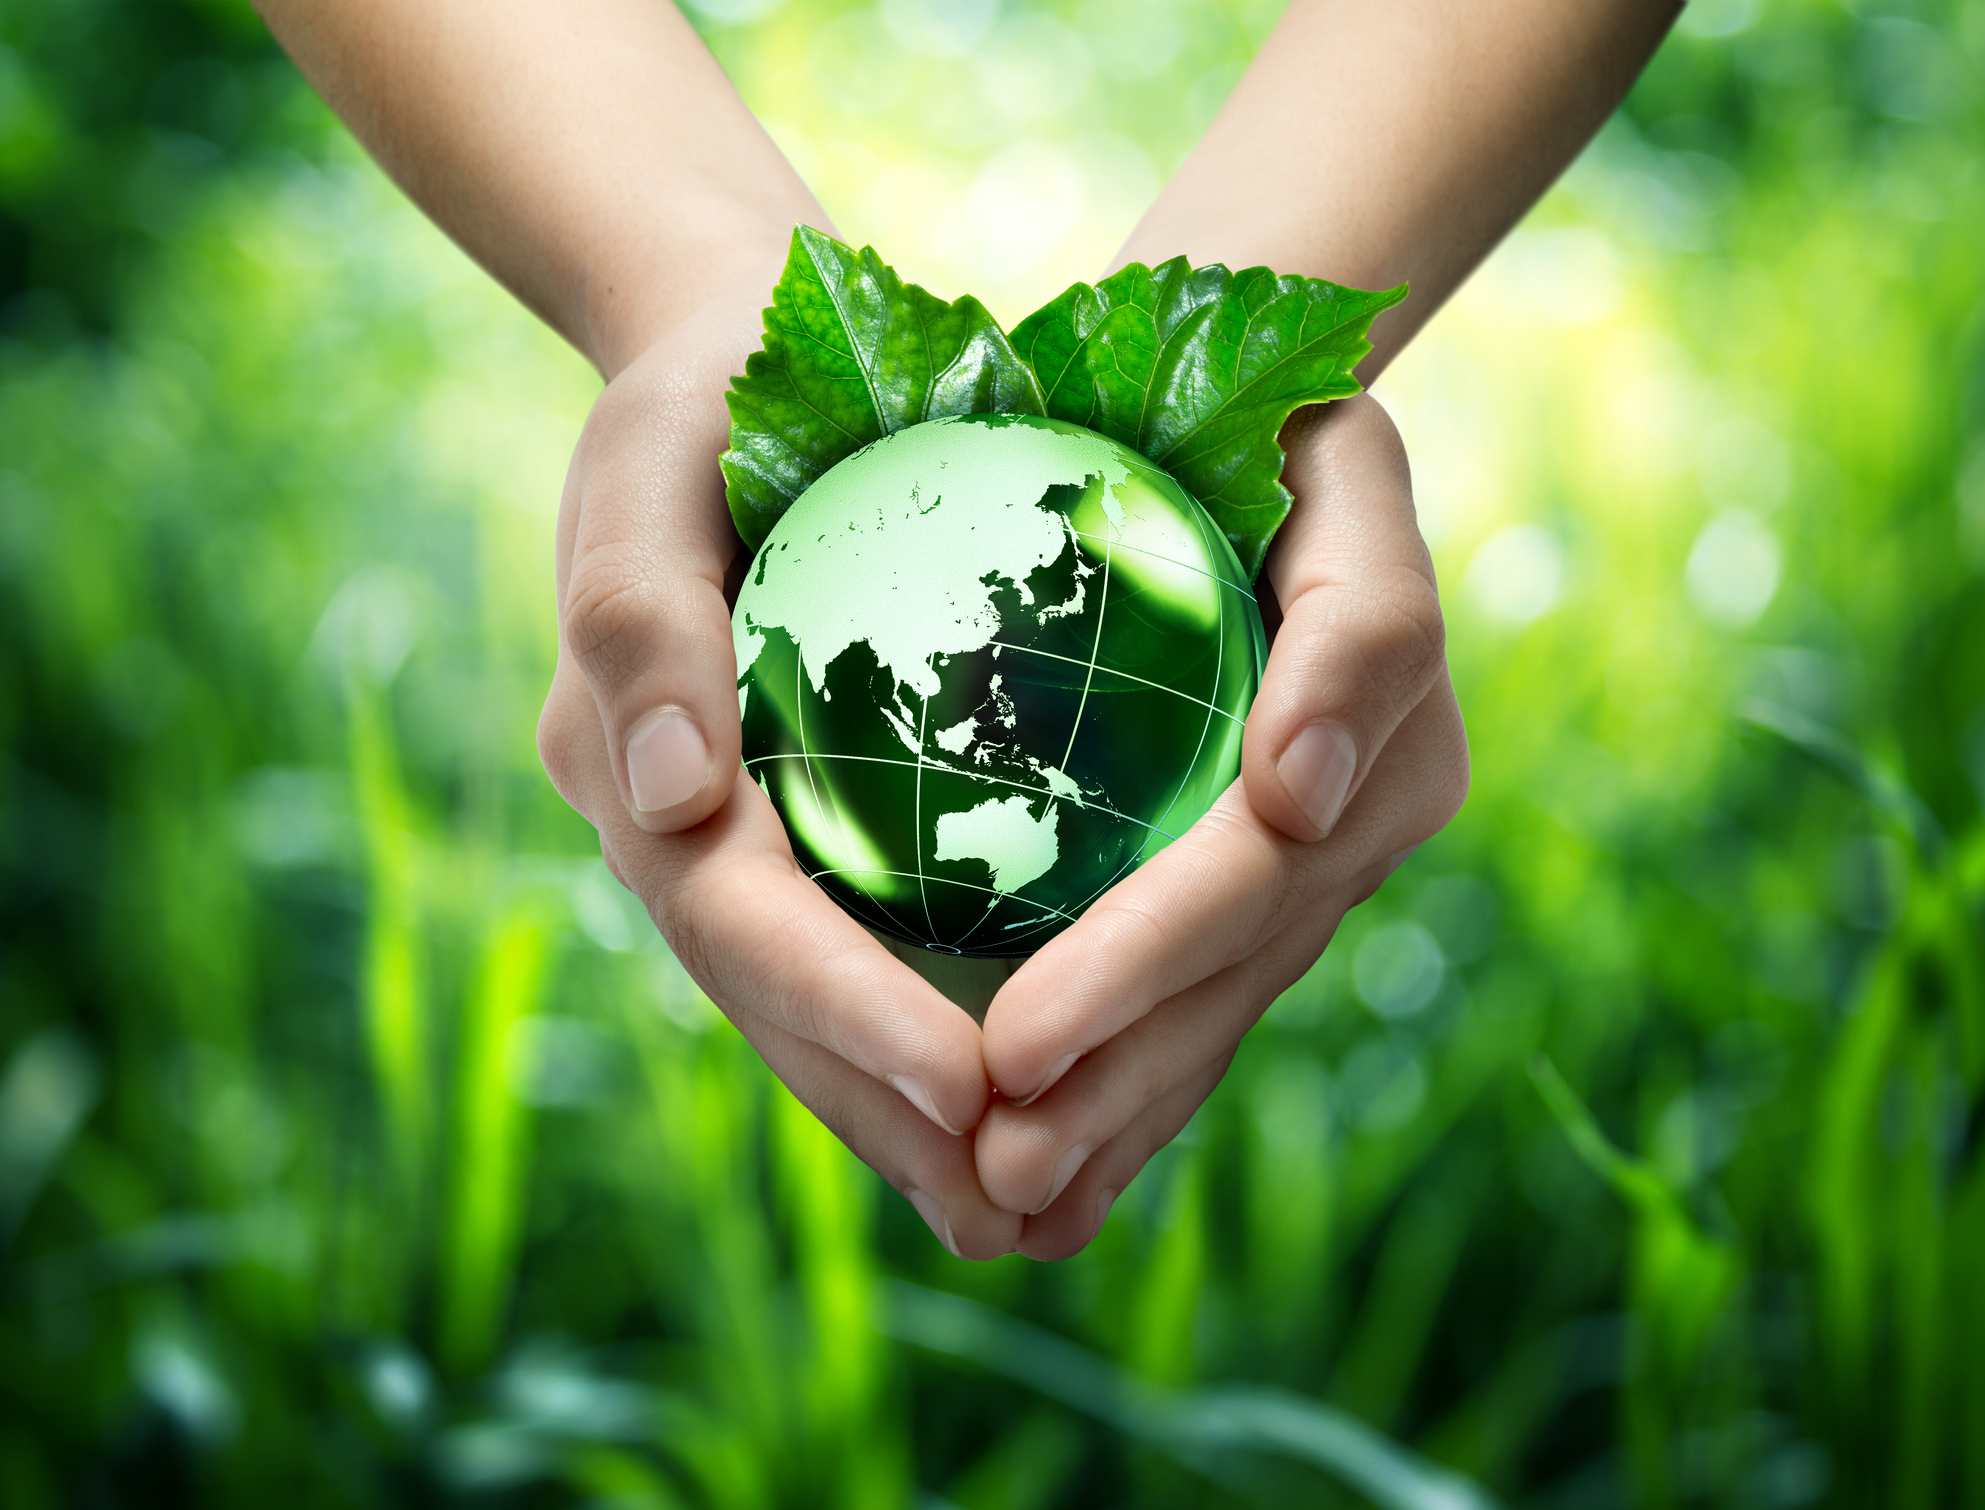 Earth Day Network has year-round programmes to plant trees, stop plastic pollution, protect biodiversity and, of course, celebrate Earth Day on April 22, to introduce new people to the movement